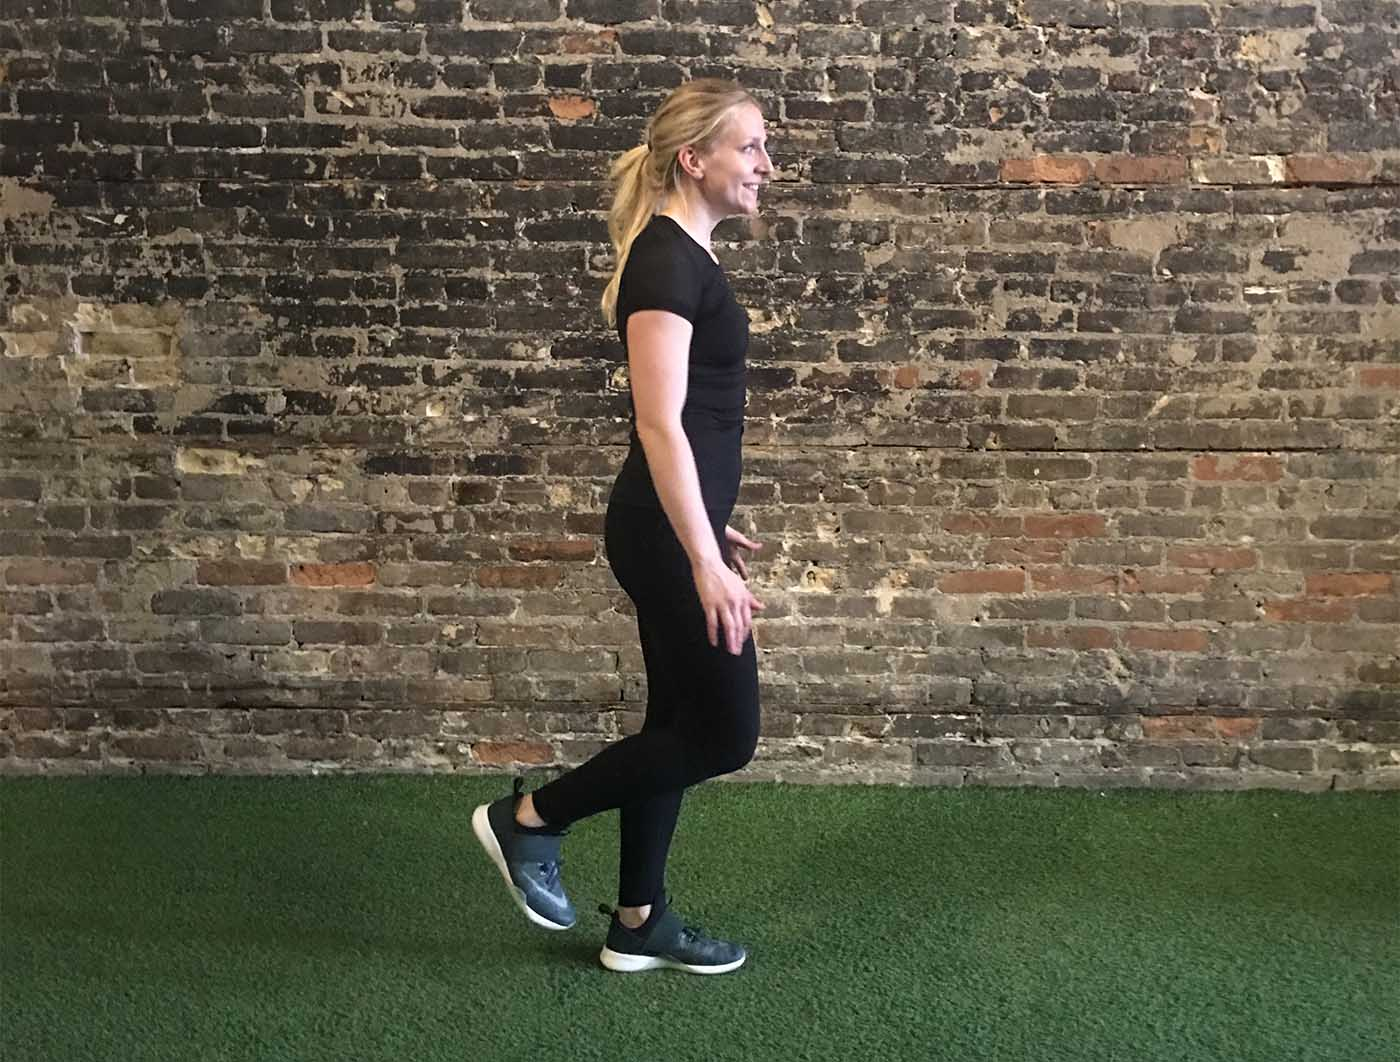 asweatlife_work-out-with-just-your-bodyweight-for-30-minutes_single-leg-burpees_6